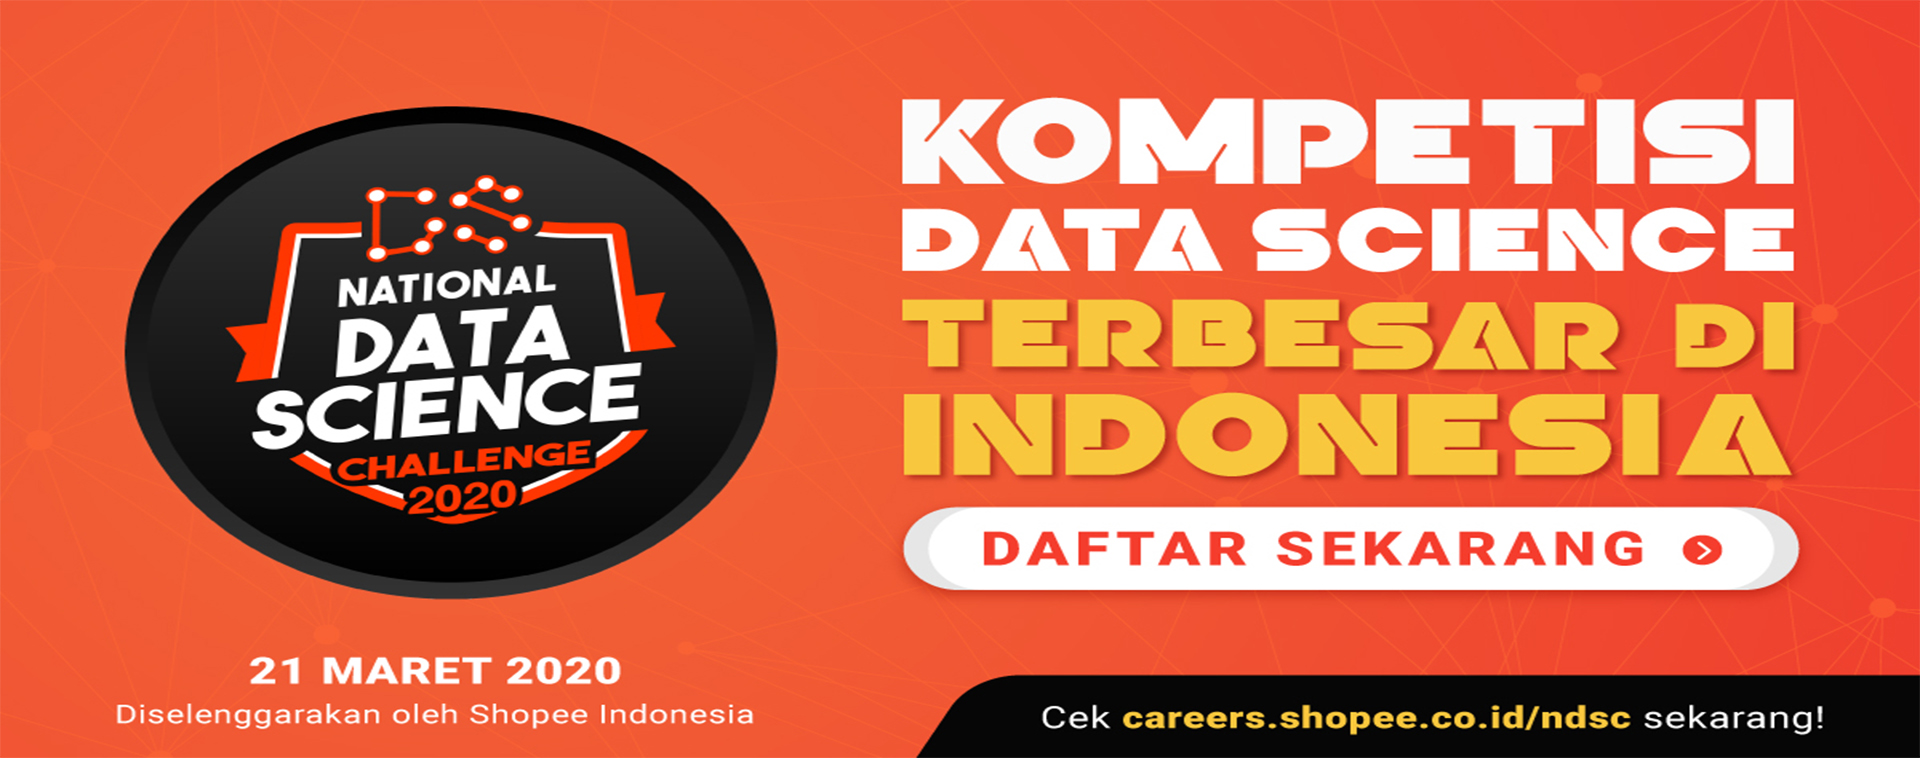 Info: Kompetisi Data Science Kerjasama Kemenr...